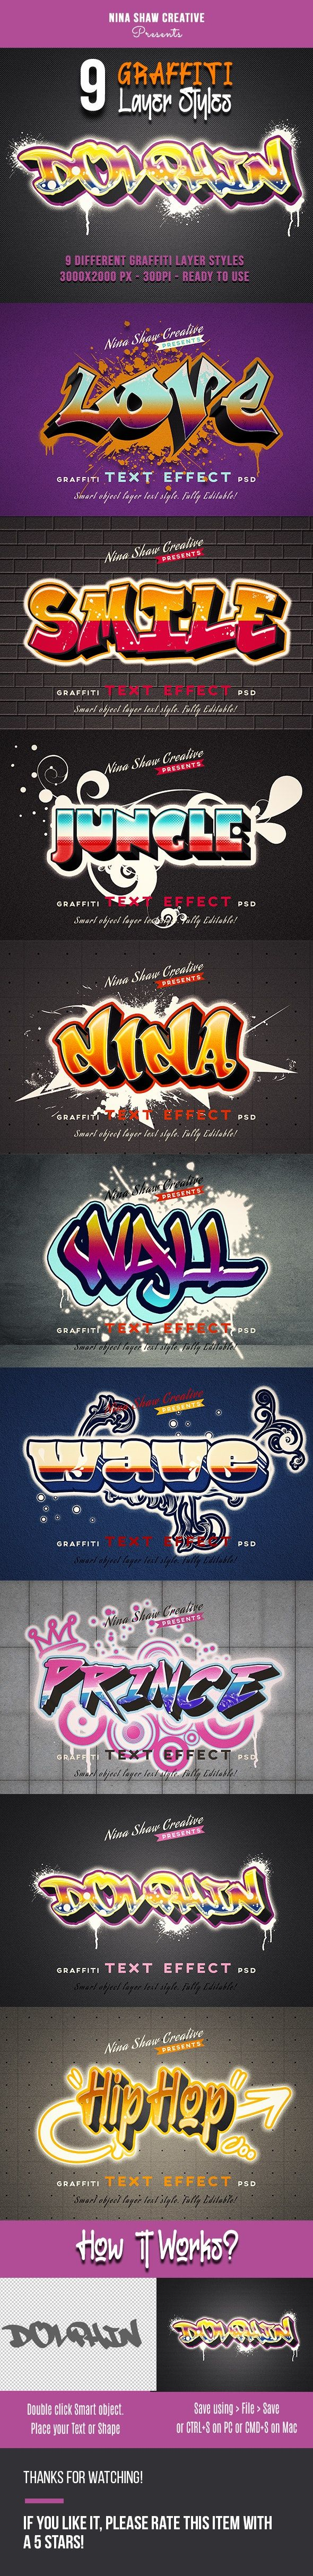 Graffiti Layer Styles in 2020 Graffiti text, Layer style